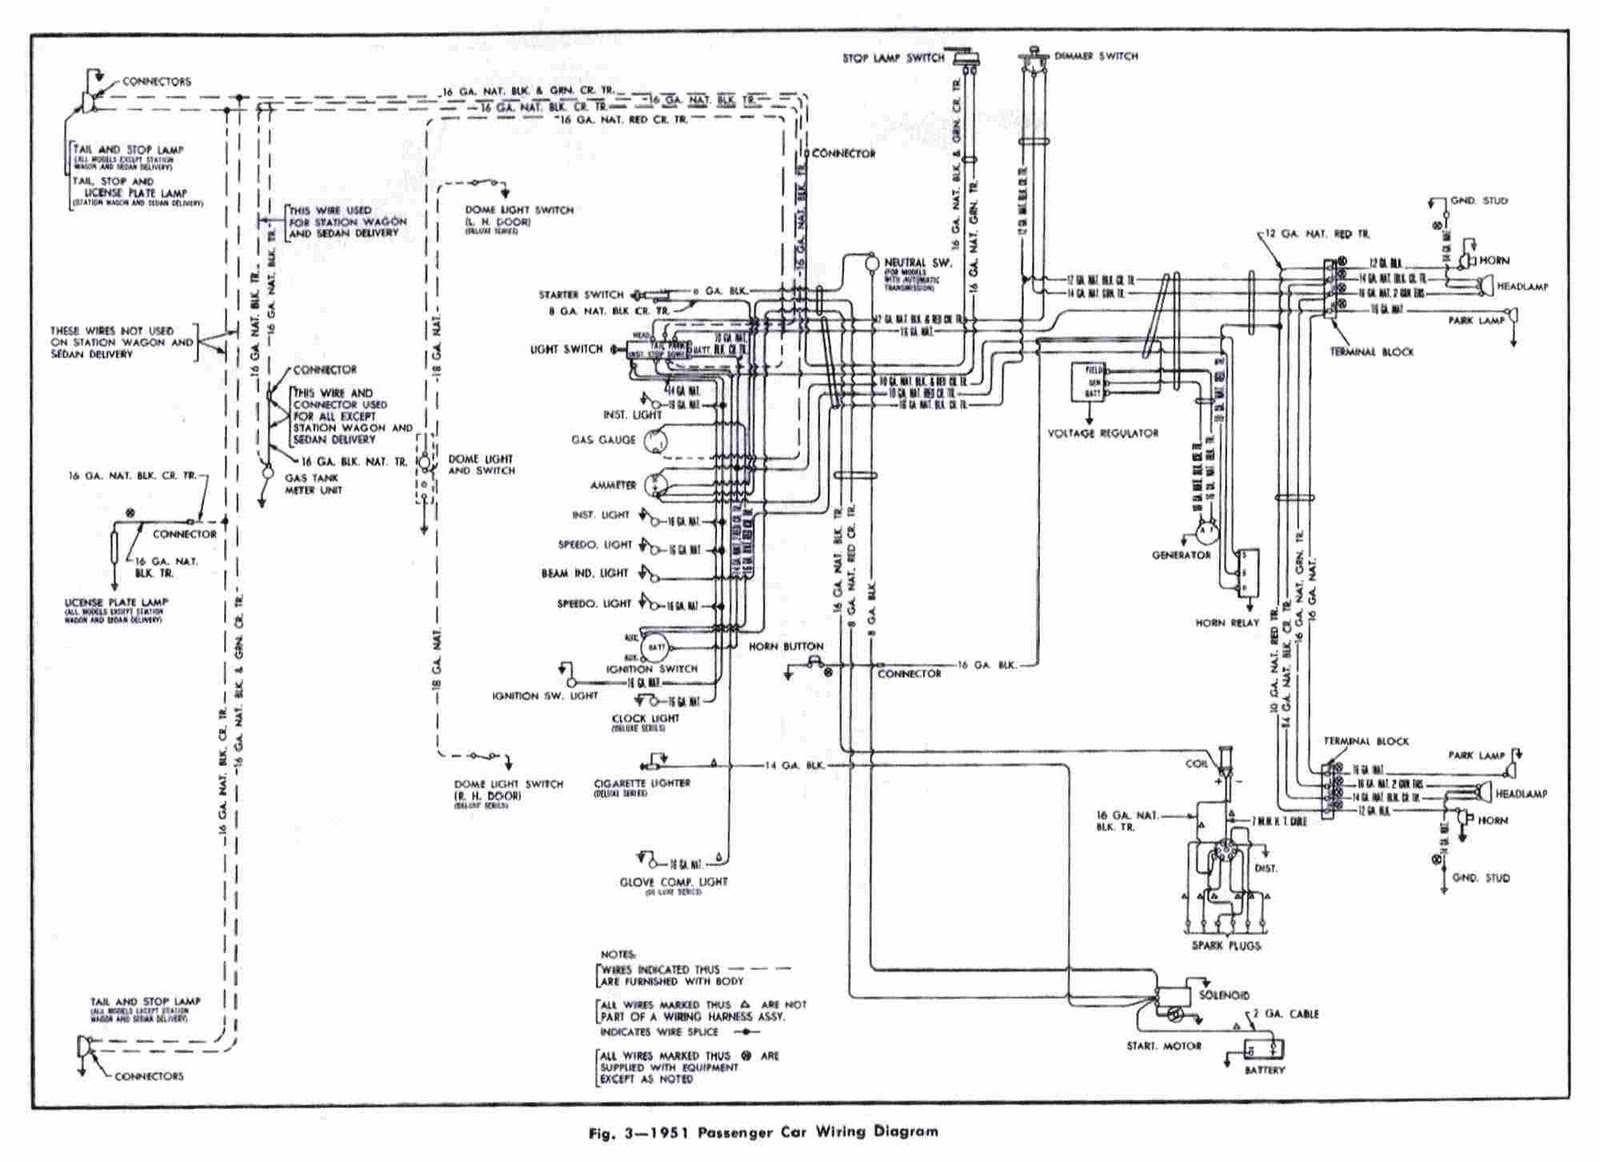 chevrolet passenger car 1951 wiring diagram